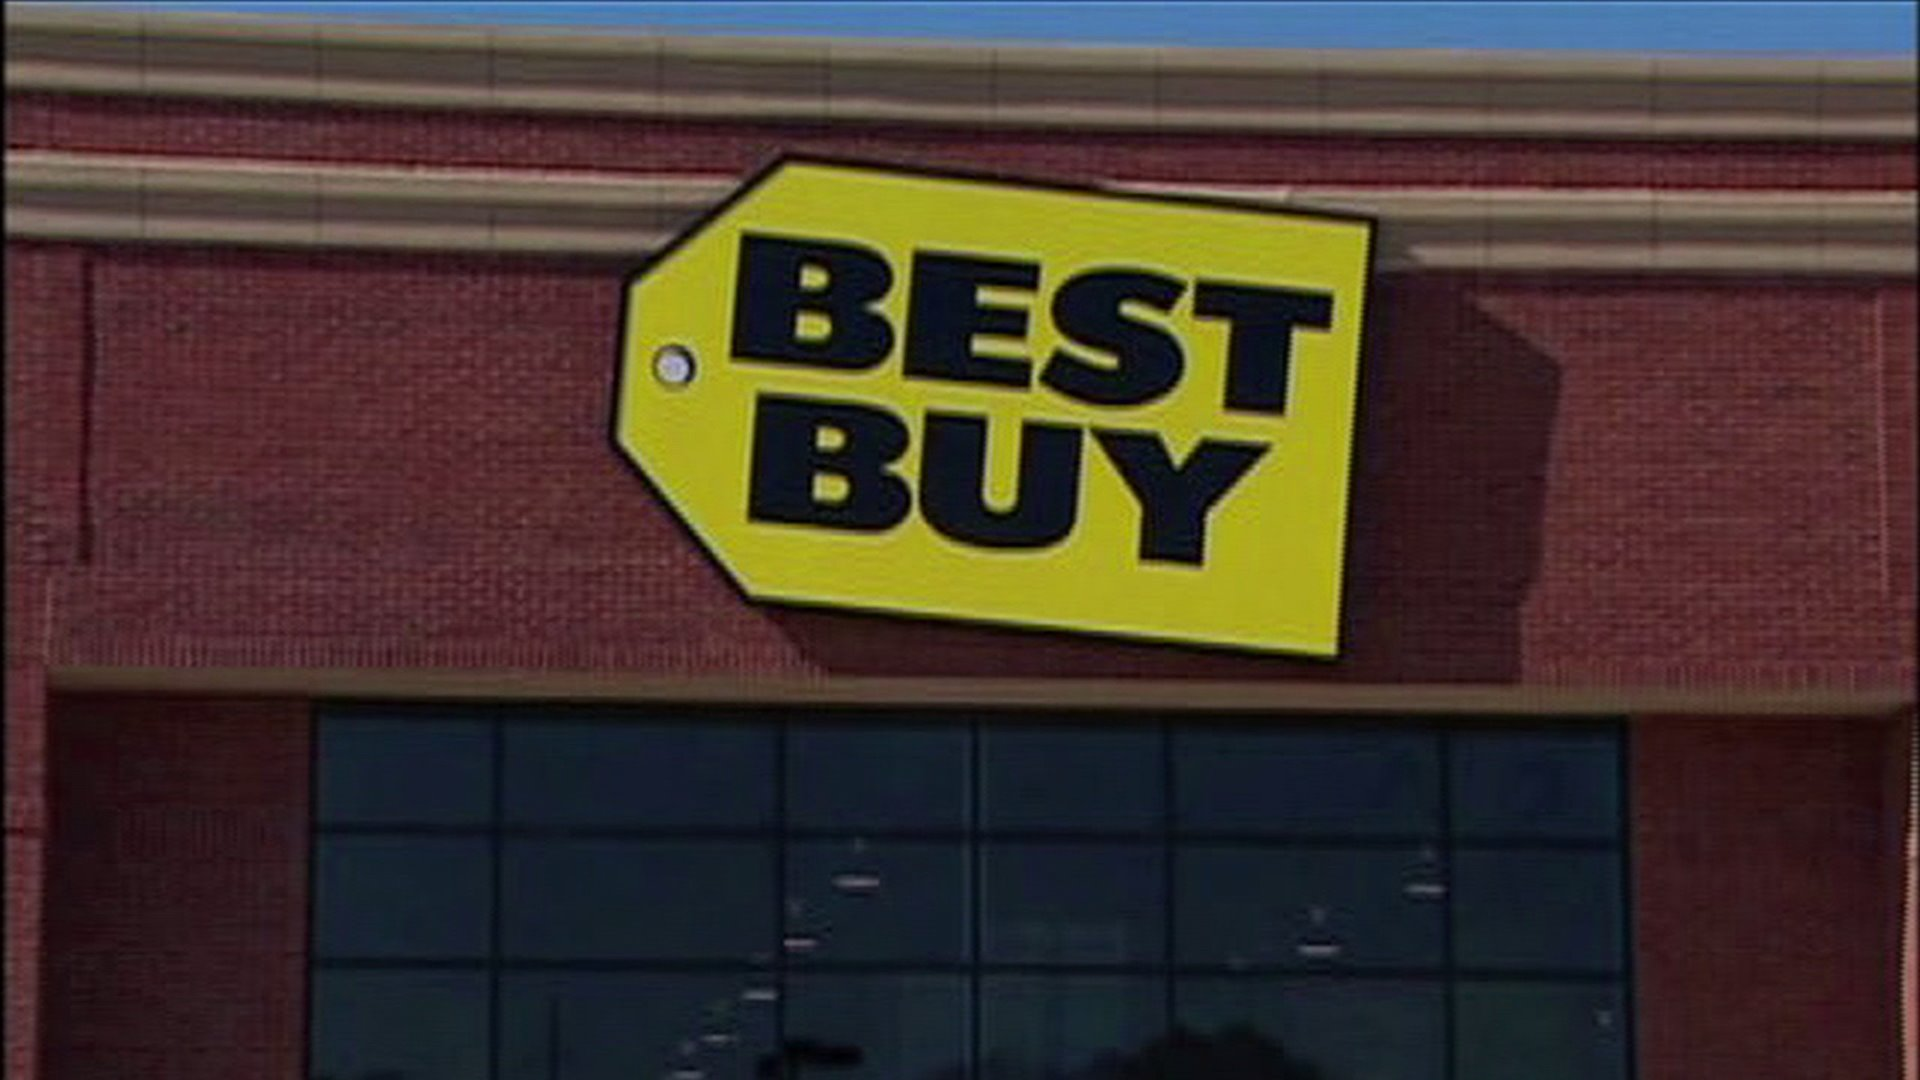 in store shopping available at some indiana best buy stores by appointment only fox 59 indiana best buy stores